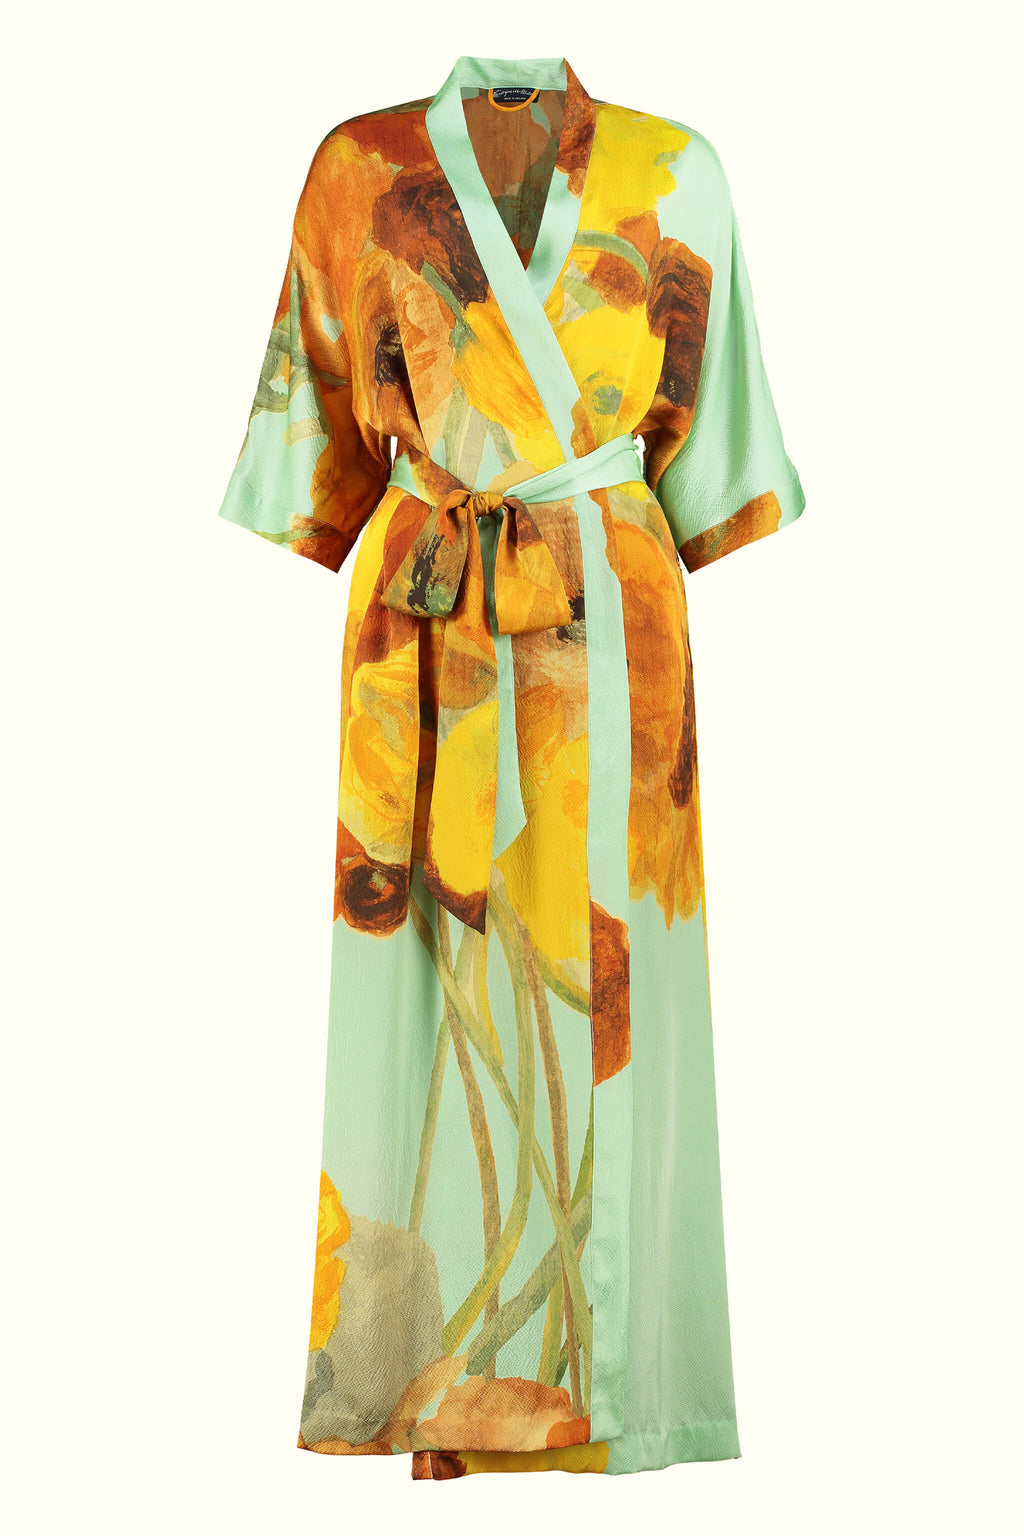 A luxury British silk robe by GVE in mint ochre Ranunculus print design.